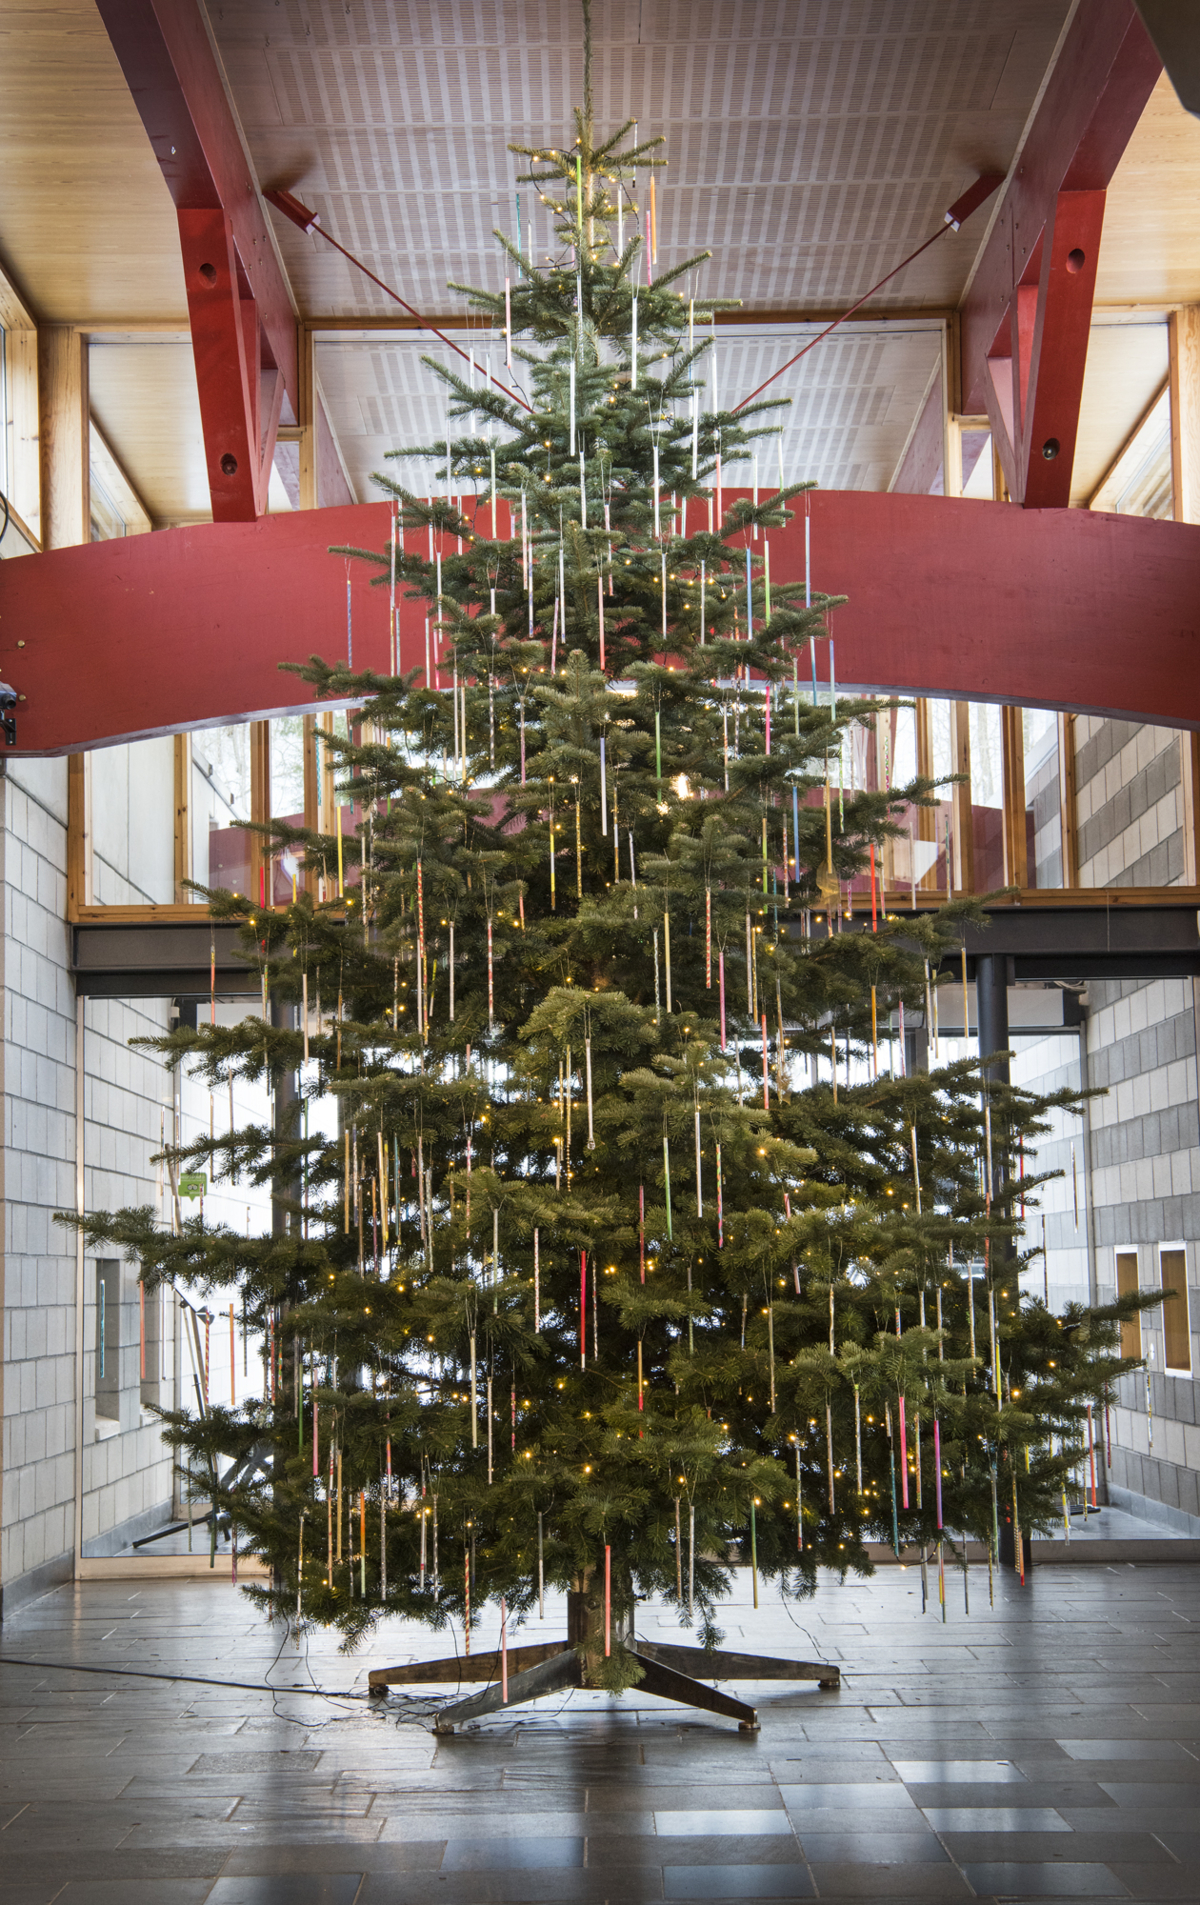 Large Christmas tree decorated with glass cyllinders in different colors.